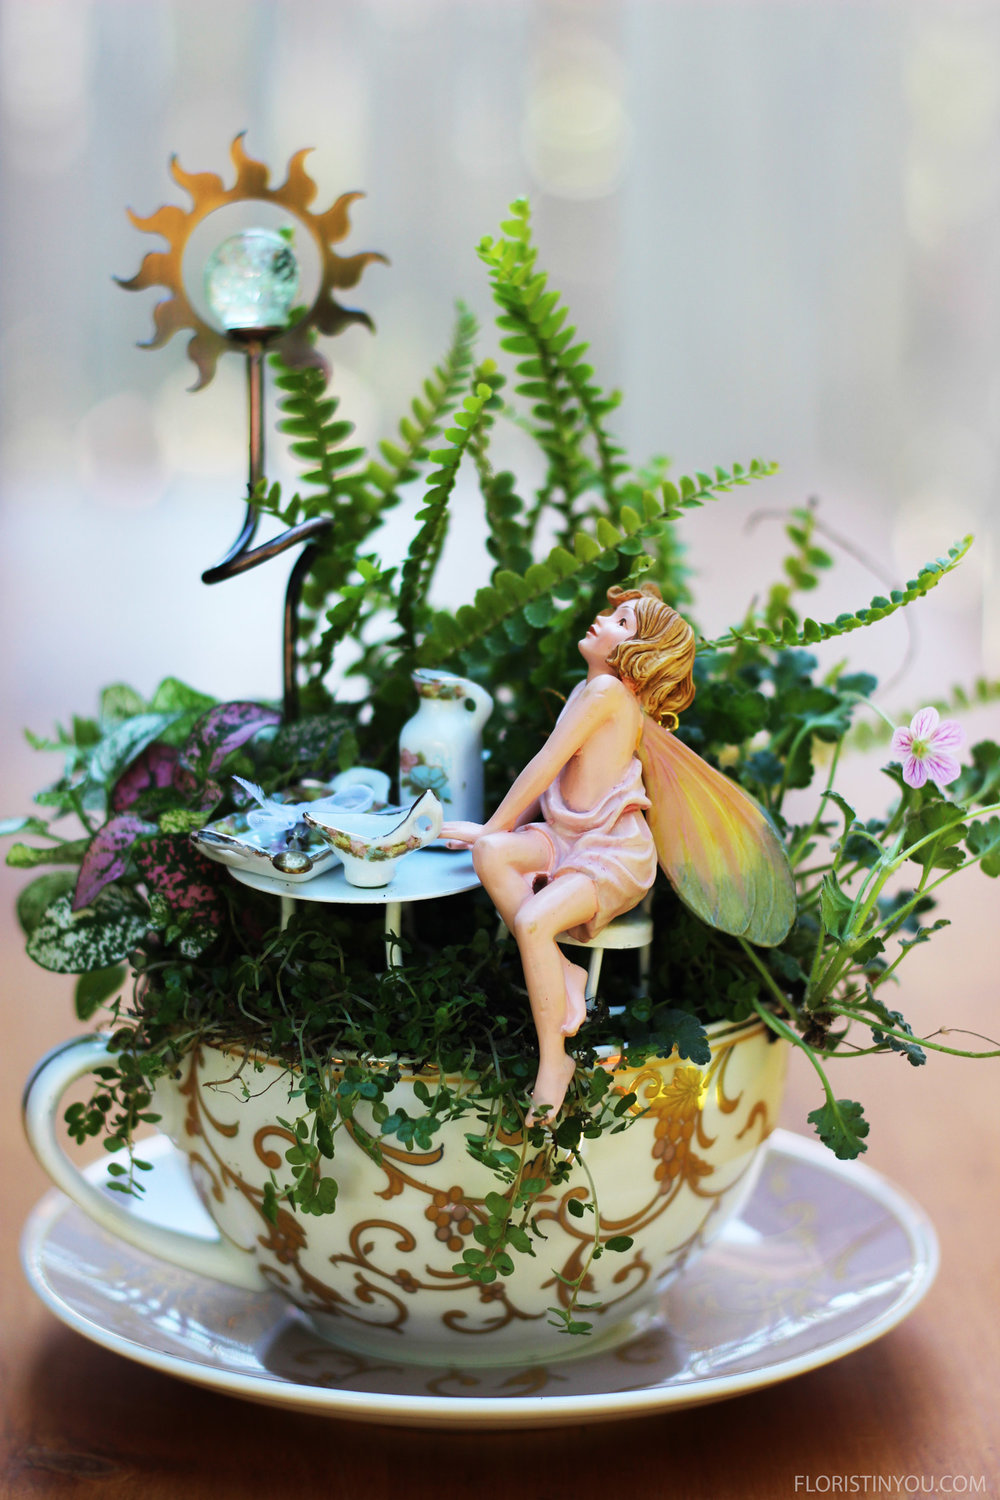 Shop for a Flower Fairie on the shop page link above.  Enjoy!